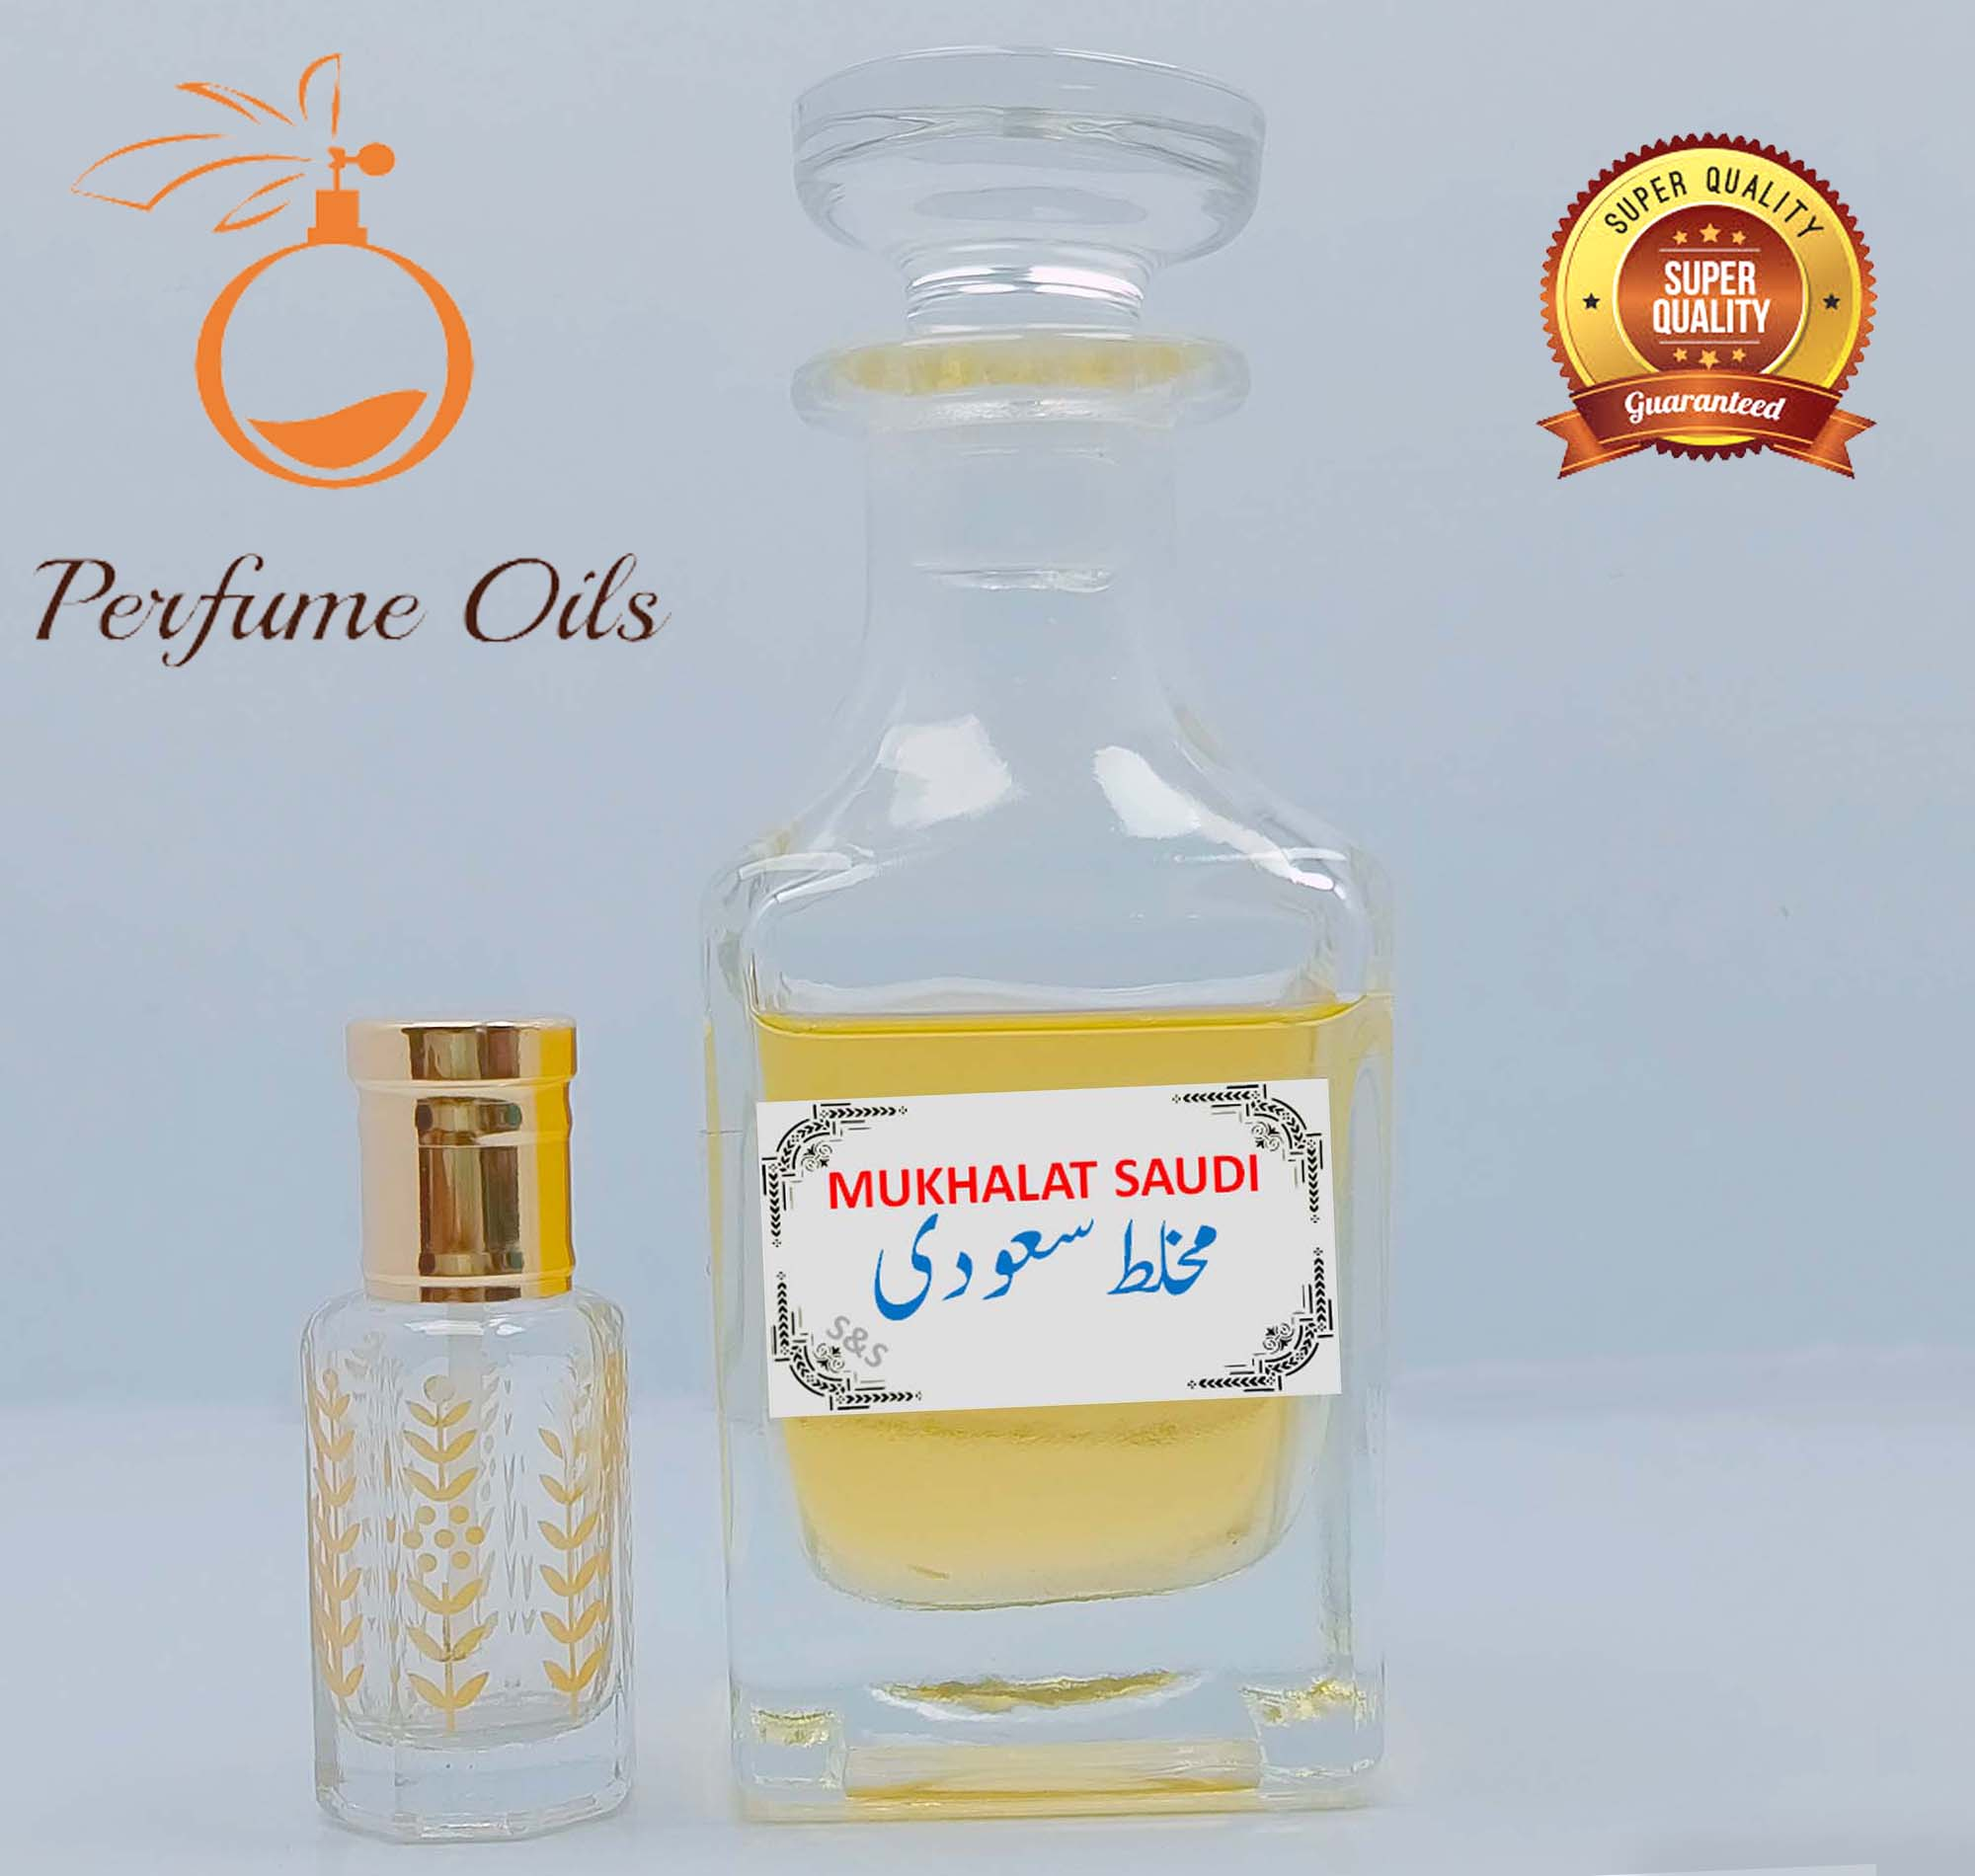 MUKHALAT SAUDI (S&S) Special Perfume Oil  Attar / Ittar   Best Projection   Long Lasting High Quality Original Fragrance by Perfume Oils Store